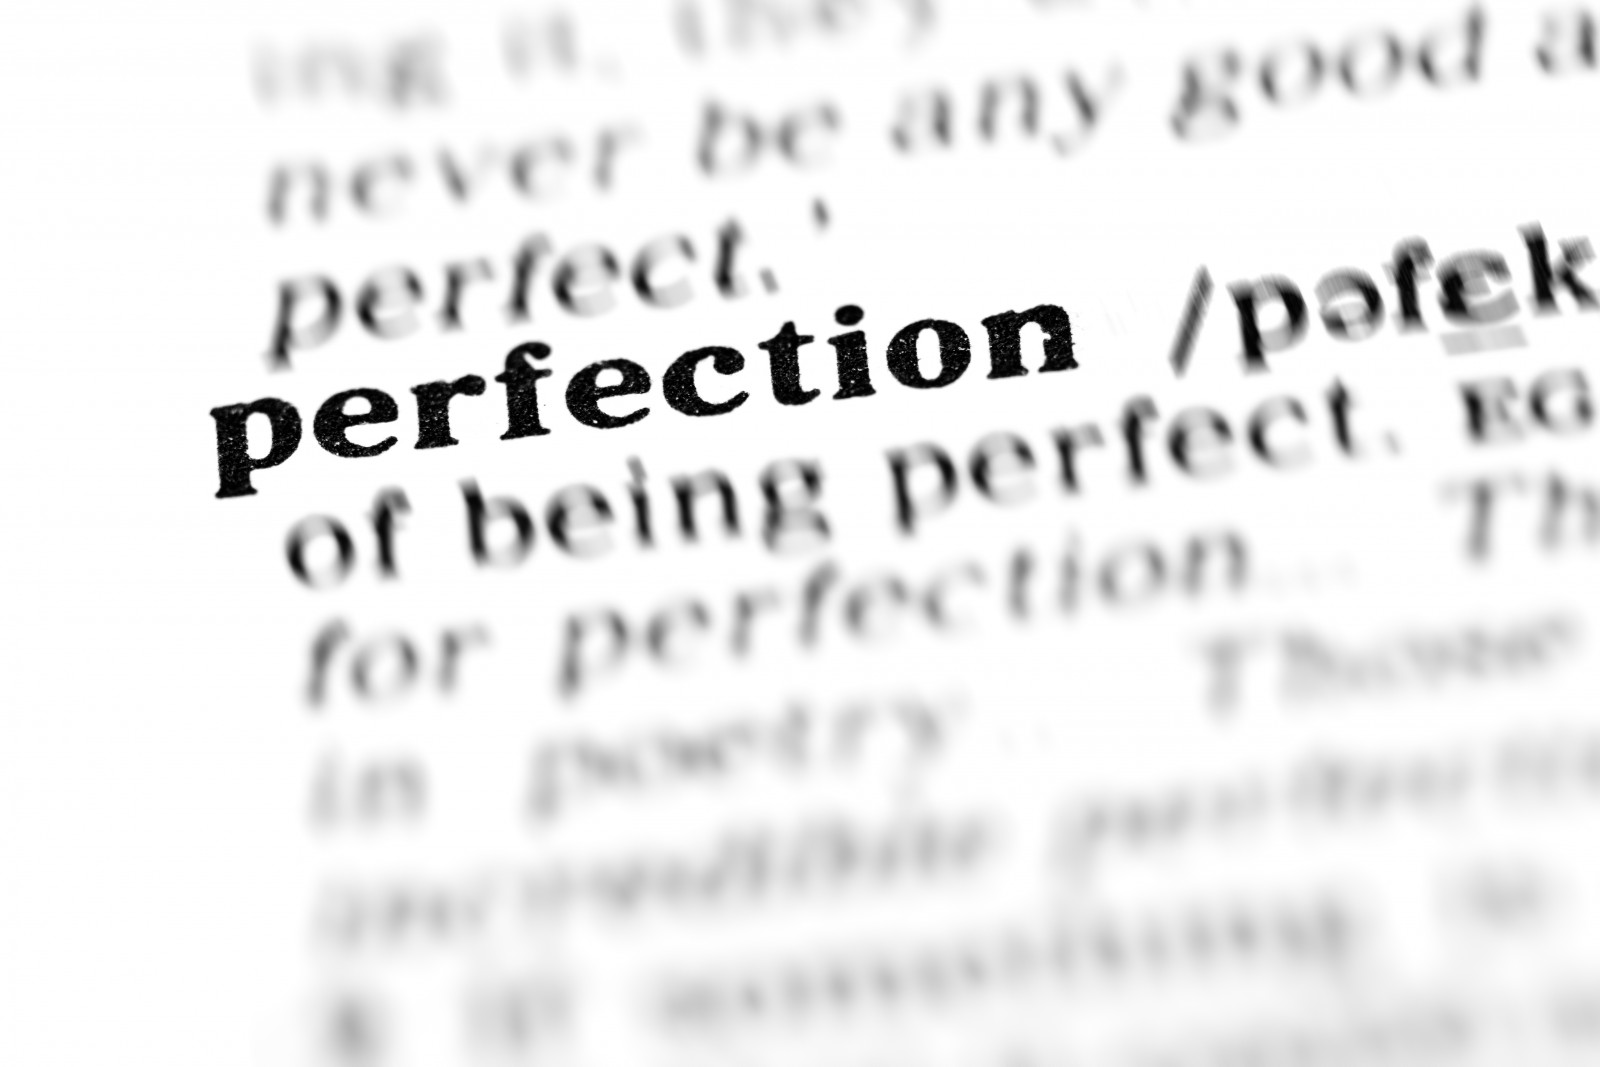 perfection (the dictionary project, macro shots, shallow D.O.F.)